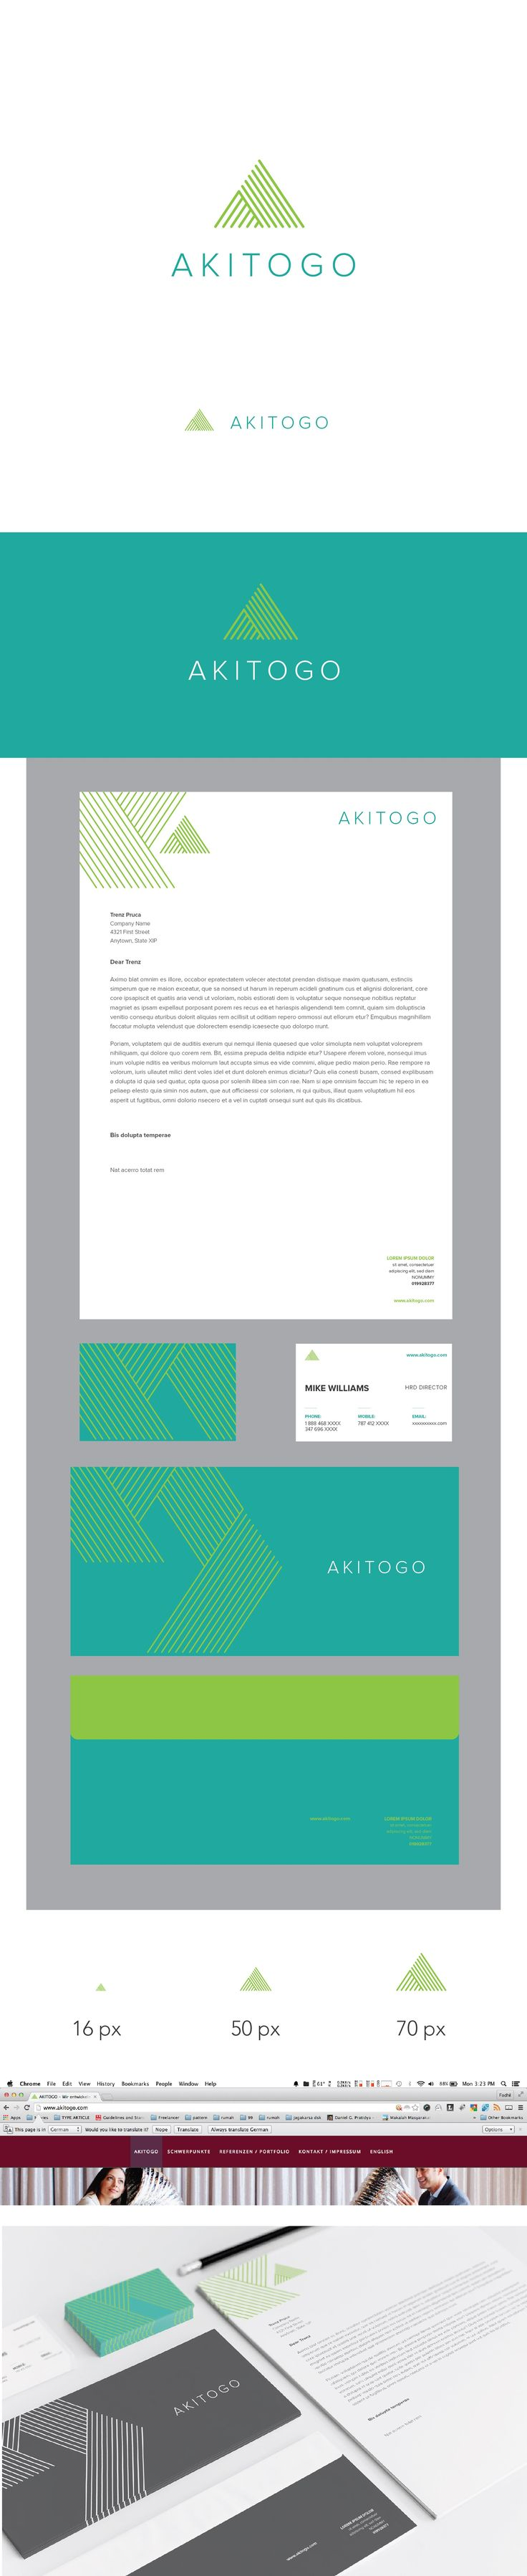 Design #161 by Pratama fadhil | Clean, edgy logo, letterhead and business card for a Web Agency